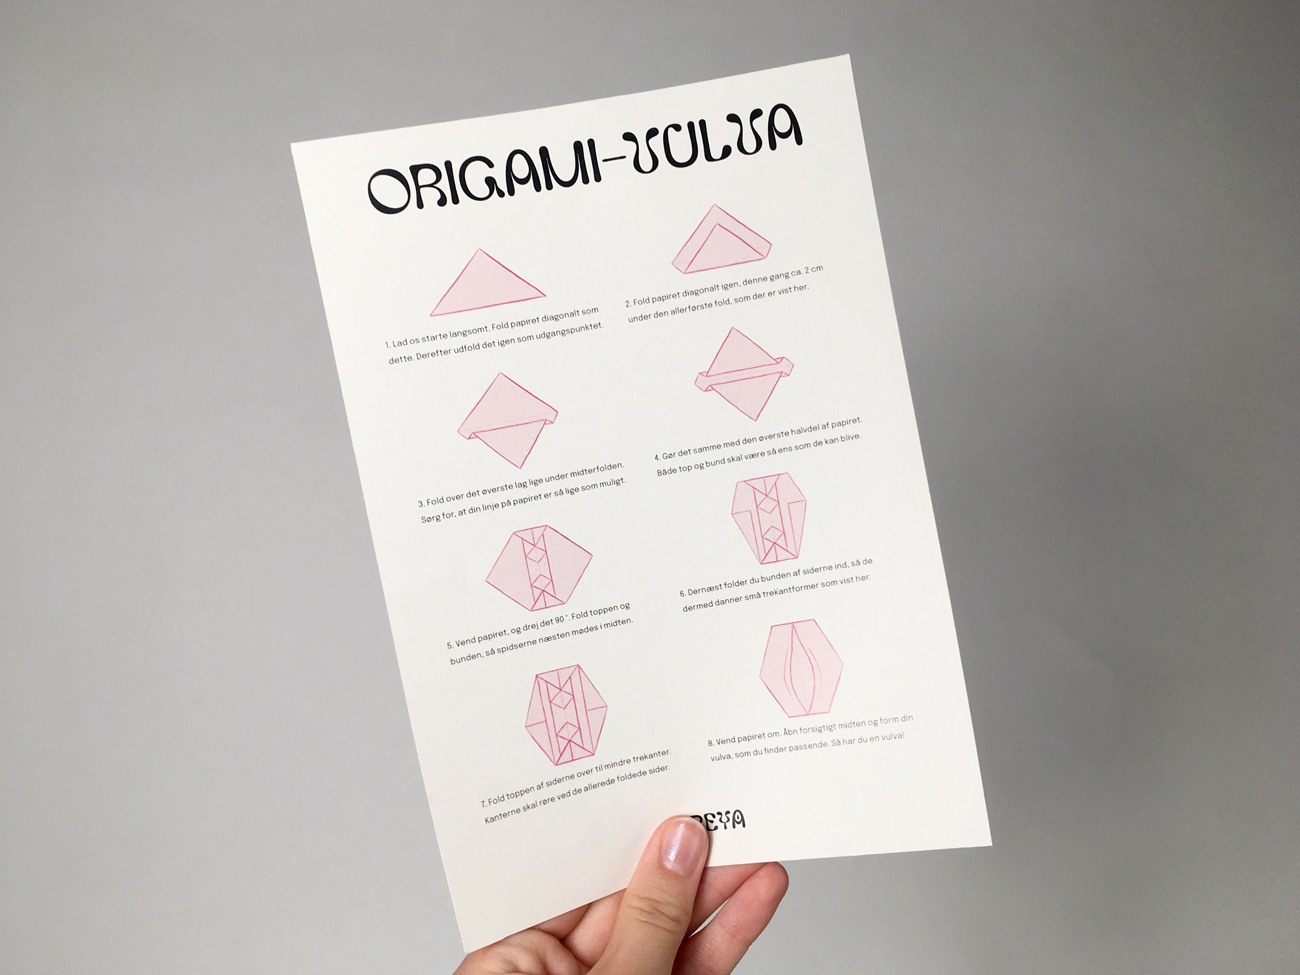 A guide for making origami vulvas - as a conversation starter to the female genitals